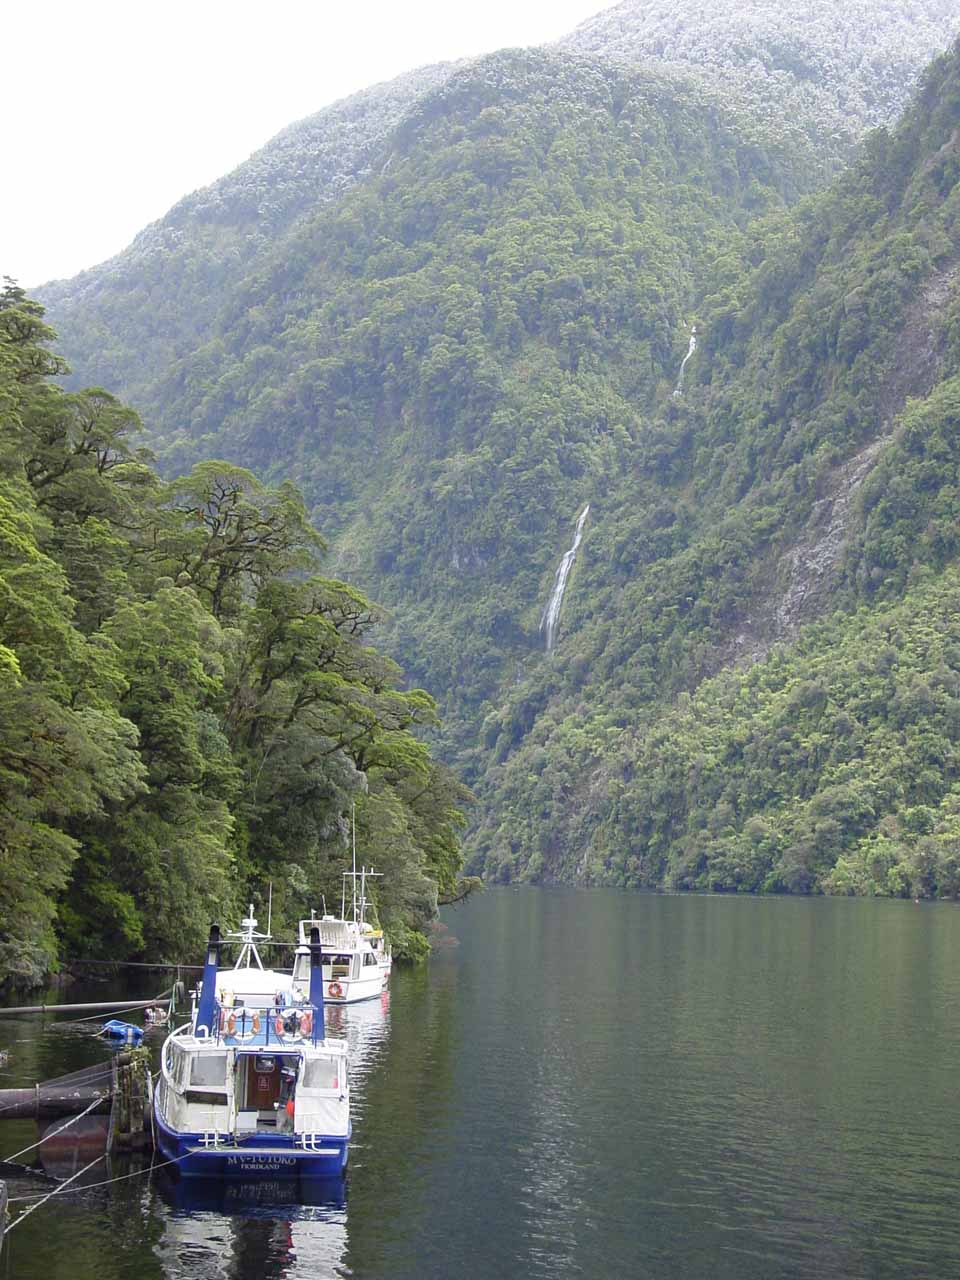 Looking at our boat vessel fronting Alice Falls in the background at the Deep Cove arm of Doubtful Sound